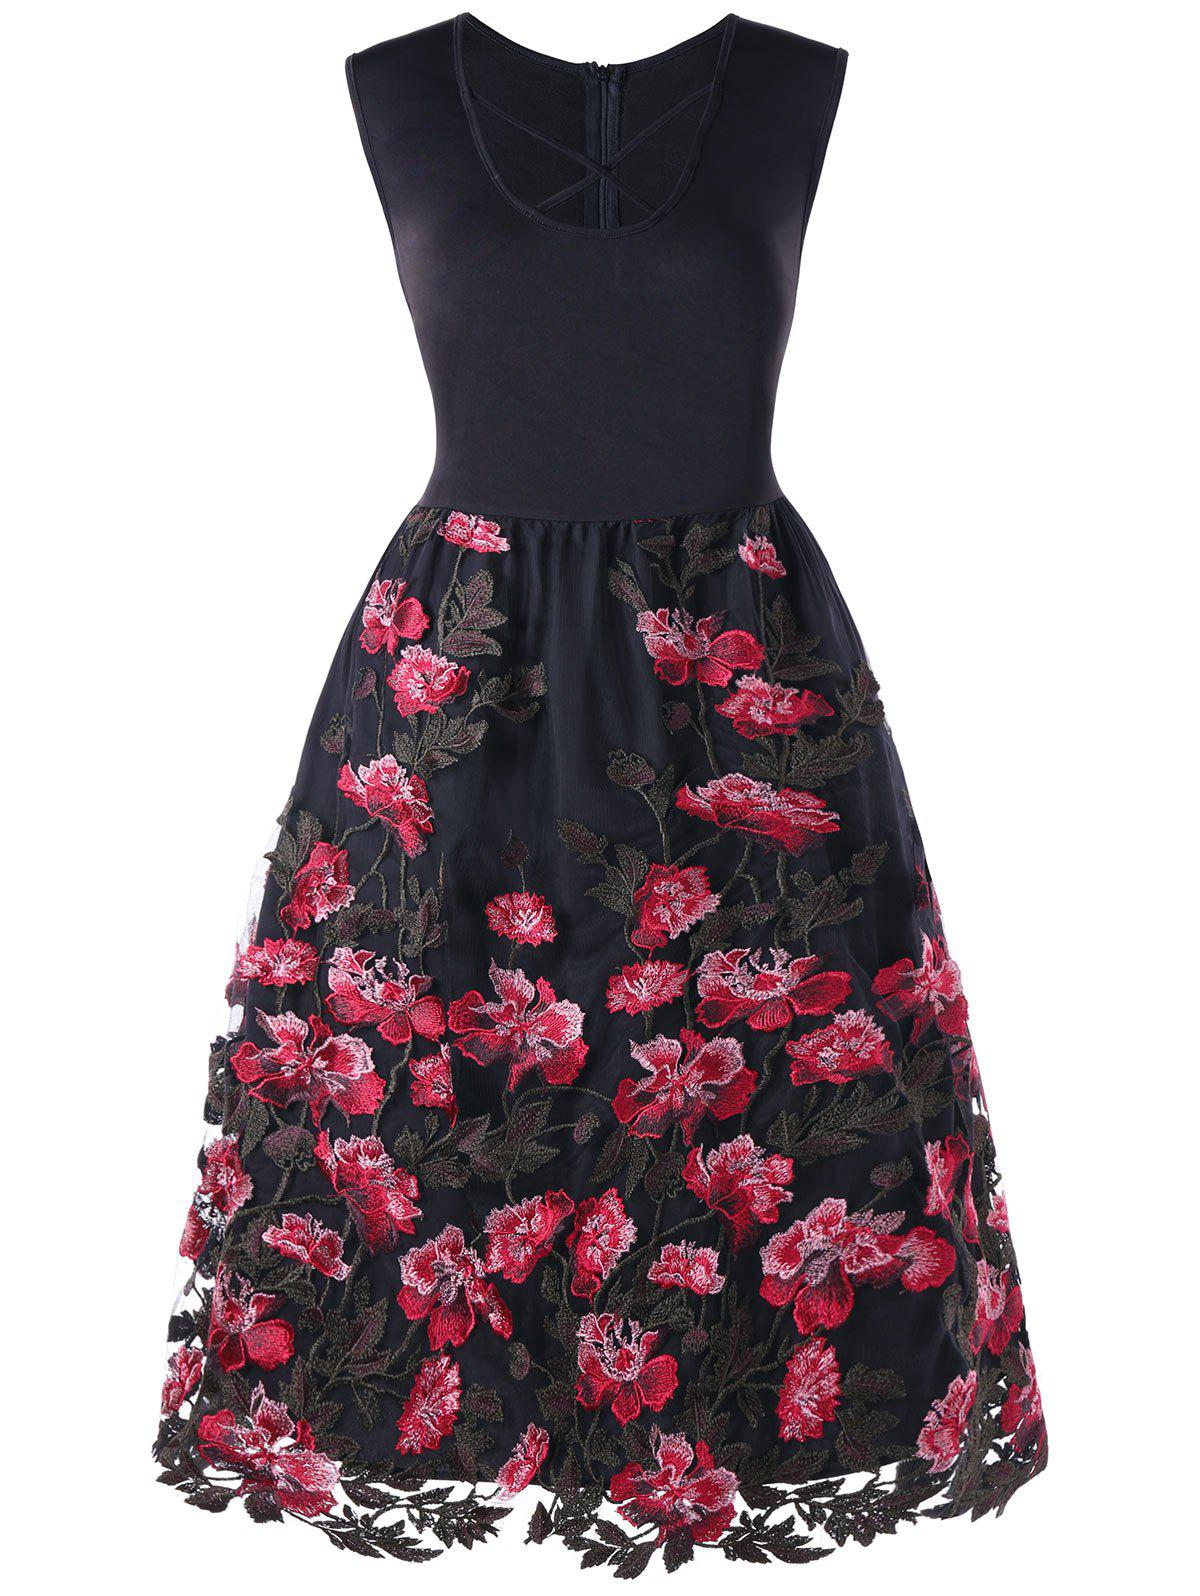 Affordable Plus Size Embroidery Appliqued Floral Swing Dress